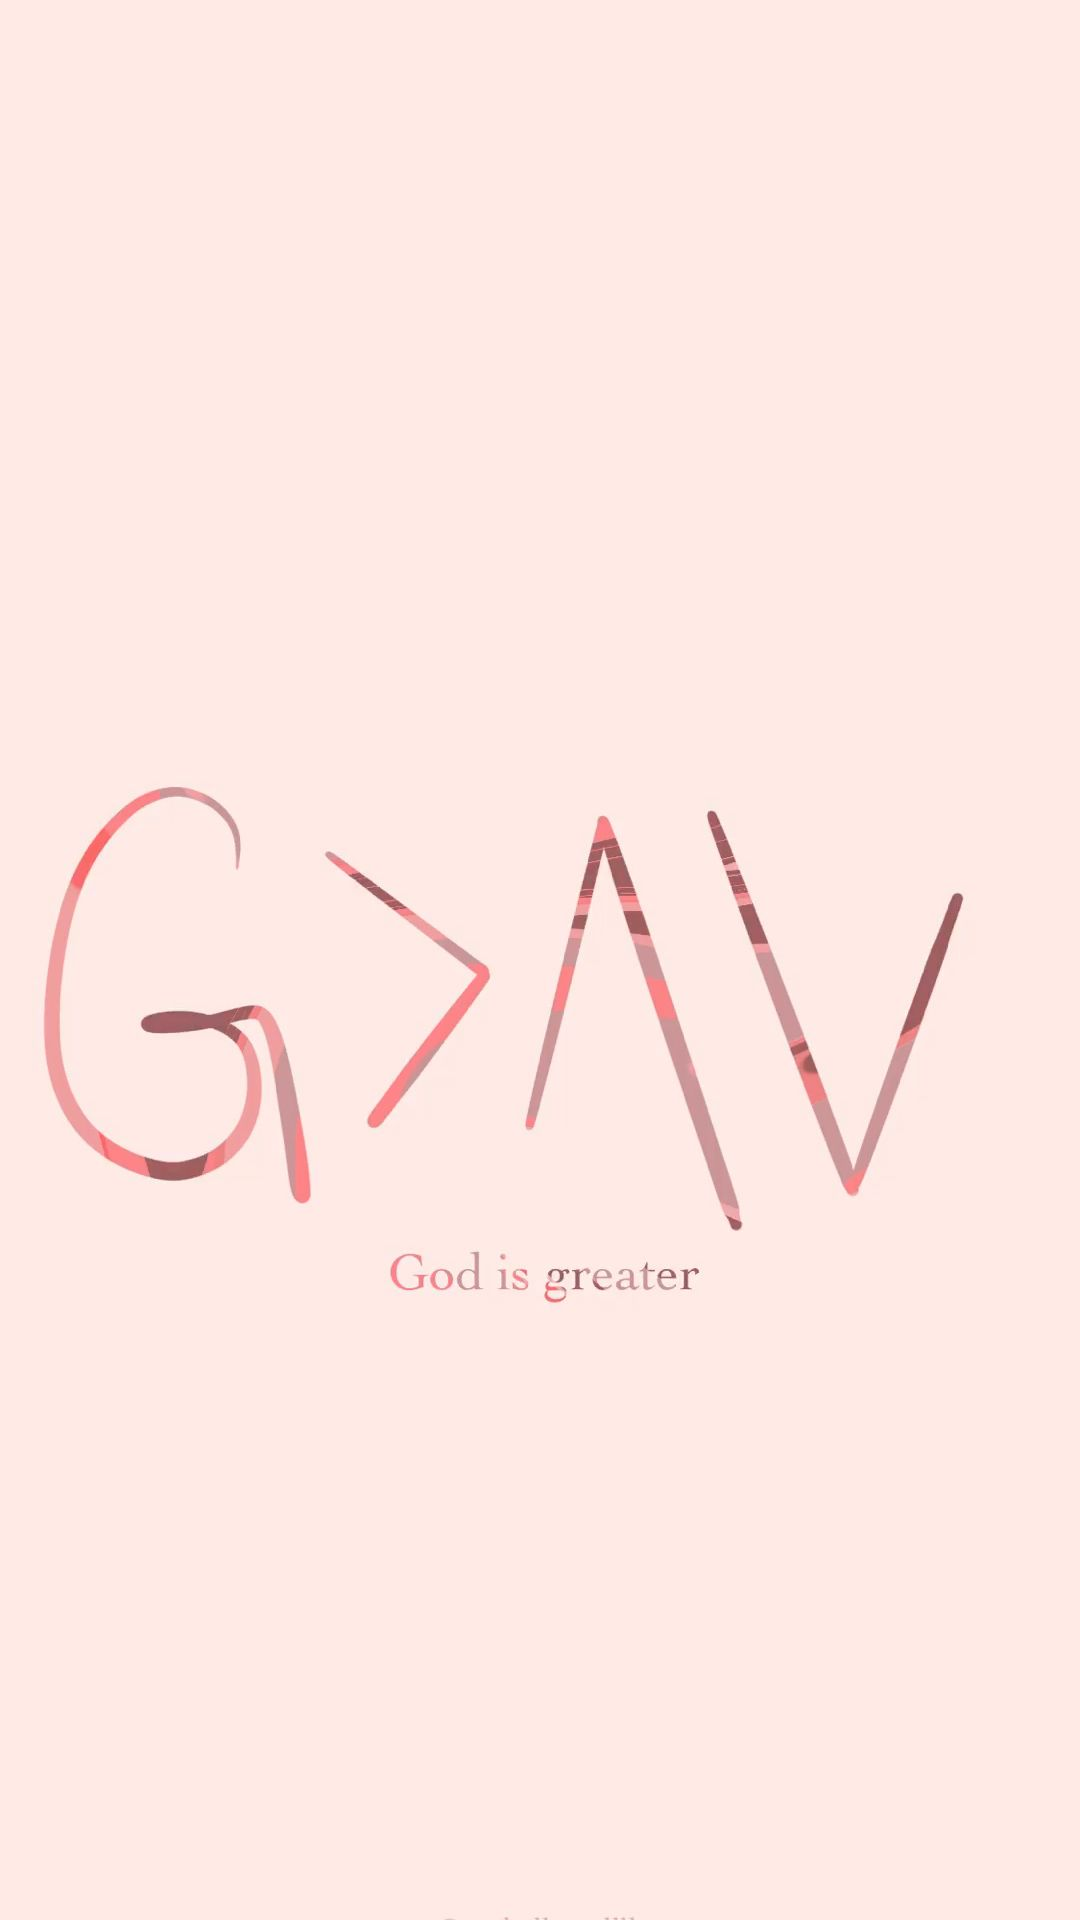 Christian Wallpapers for Every Girl